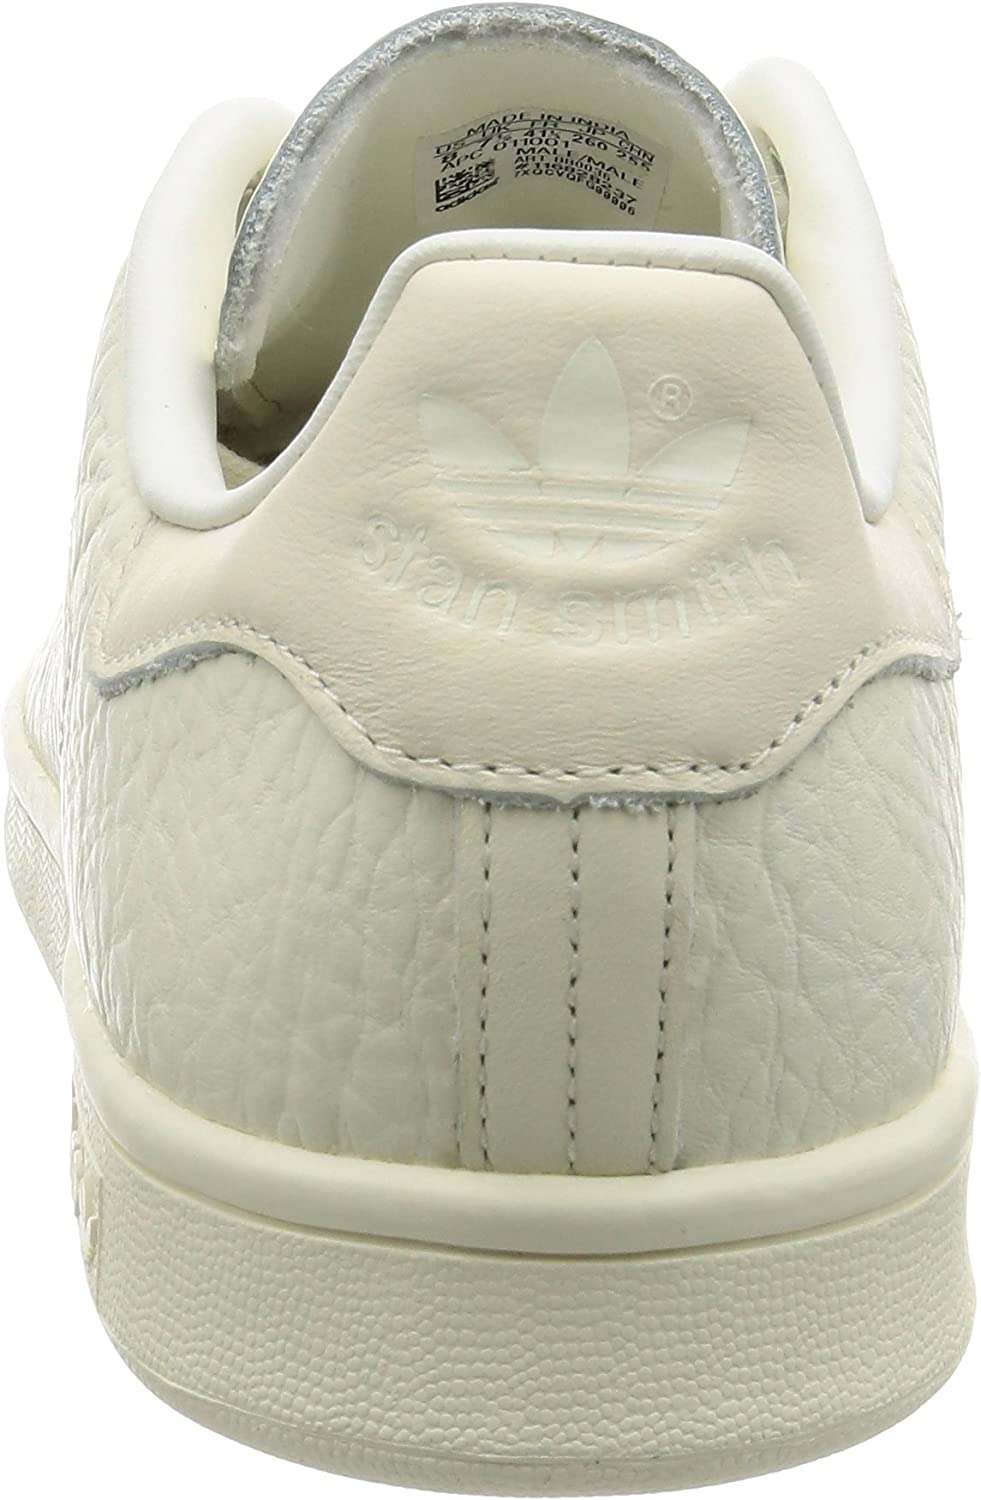 adidas Stan Smith BB0042 Baskets pour Homme Off White Textured